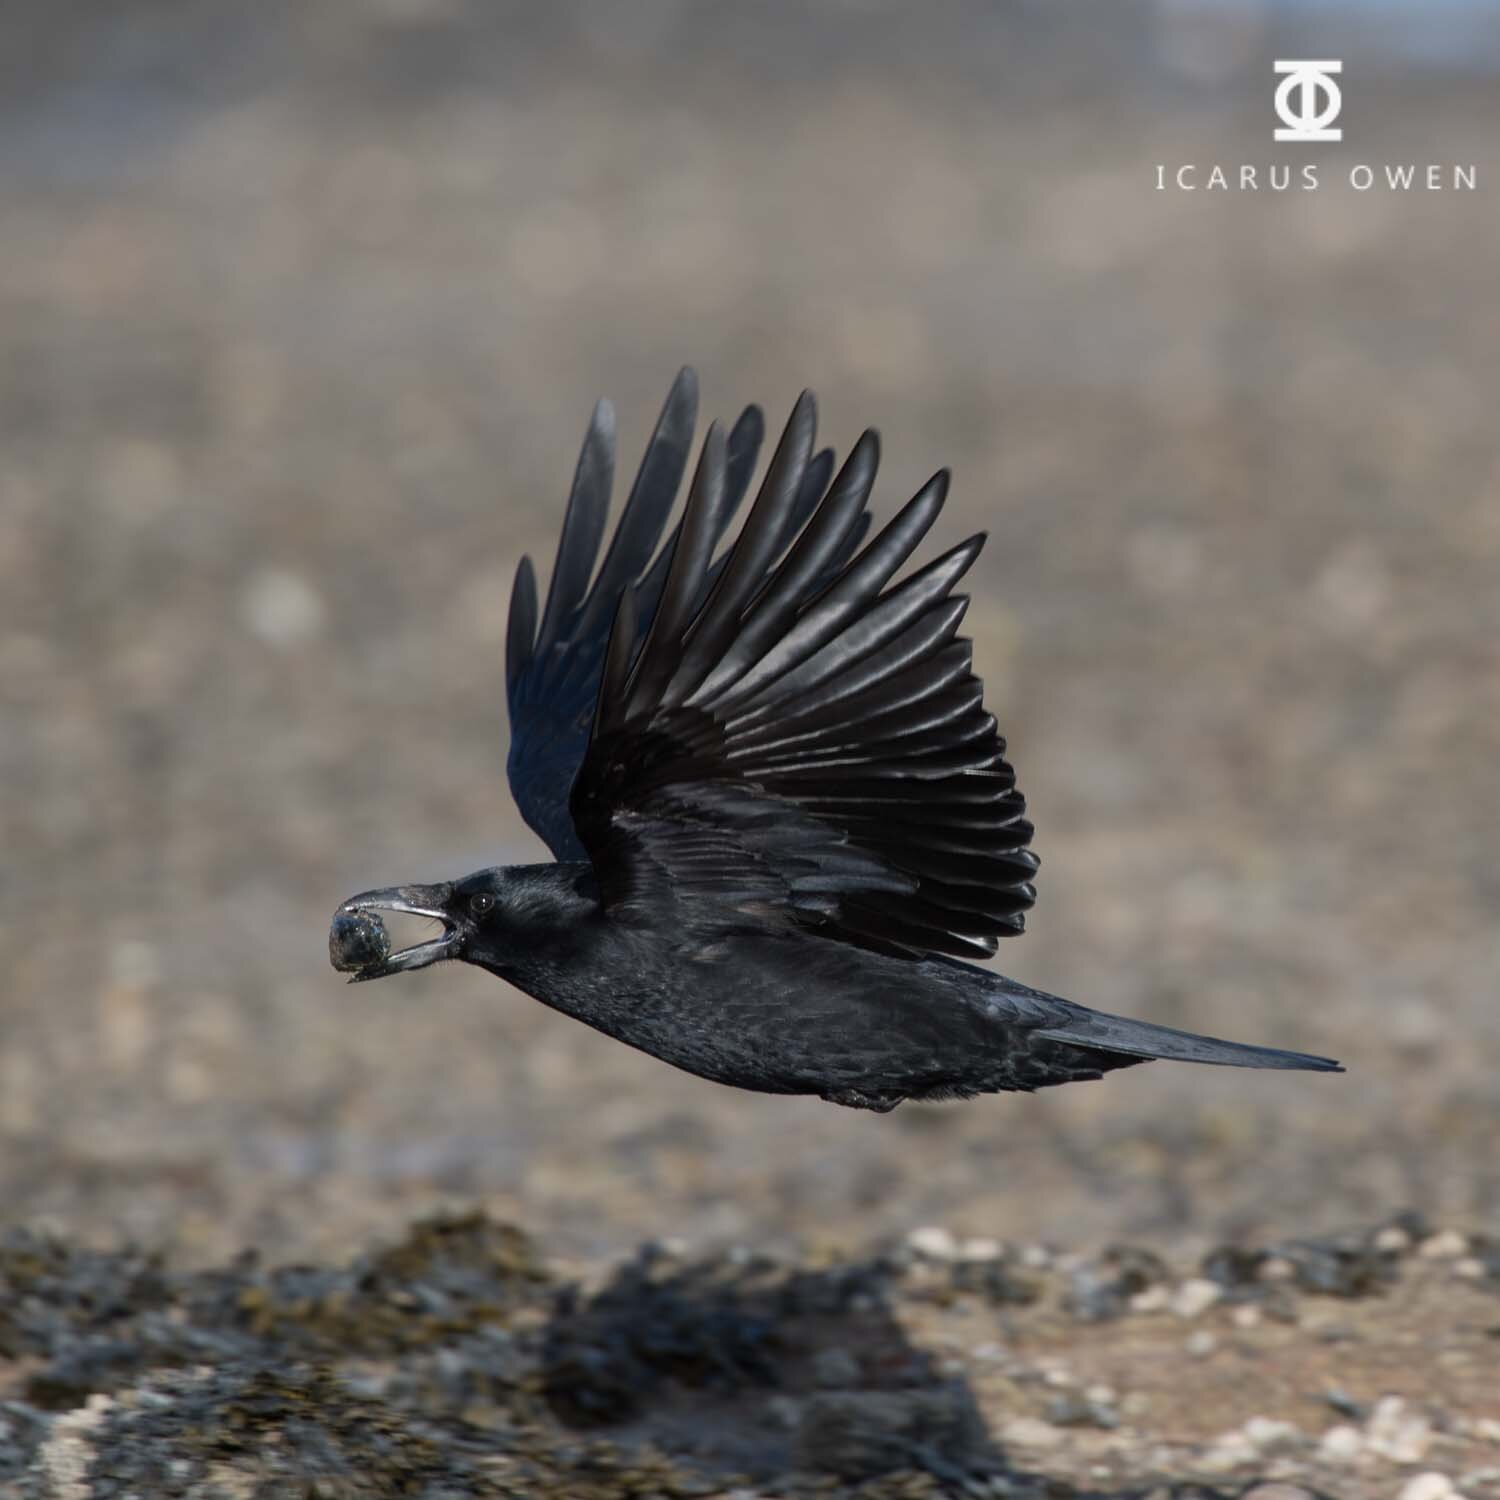 Crow flying with mussel taken at Ythan Estuary, Scotland.